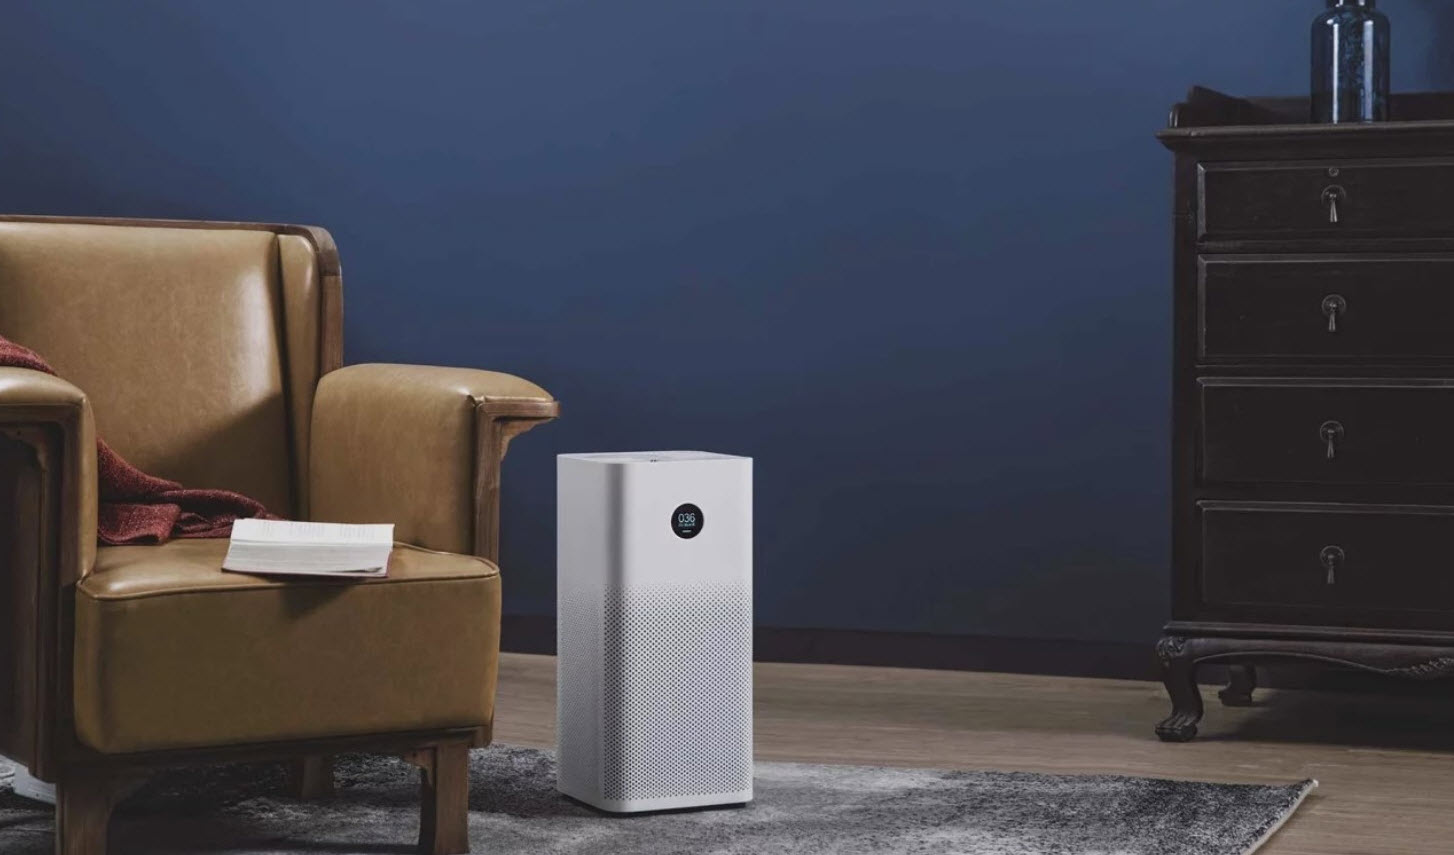 Mi Air Purifier 2S – Who Doesn't Want Fresher Air In Their Home?